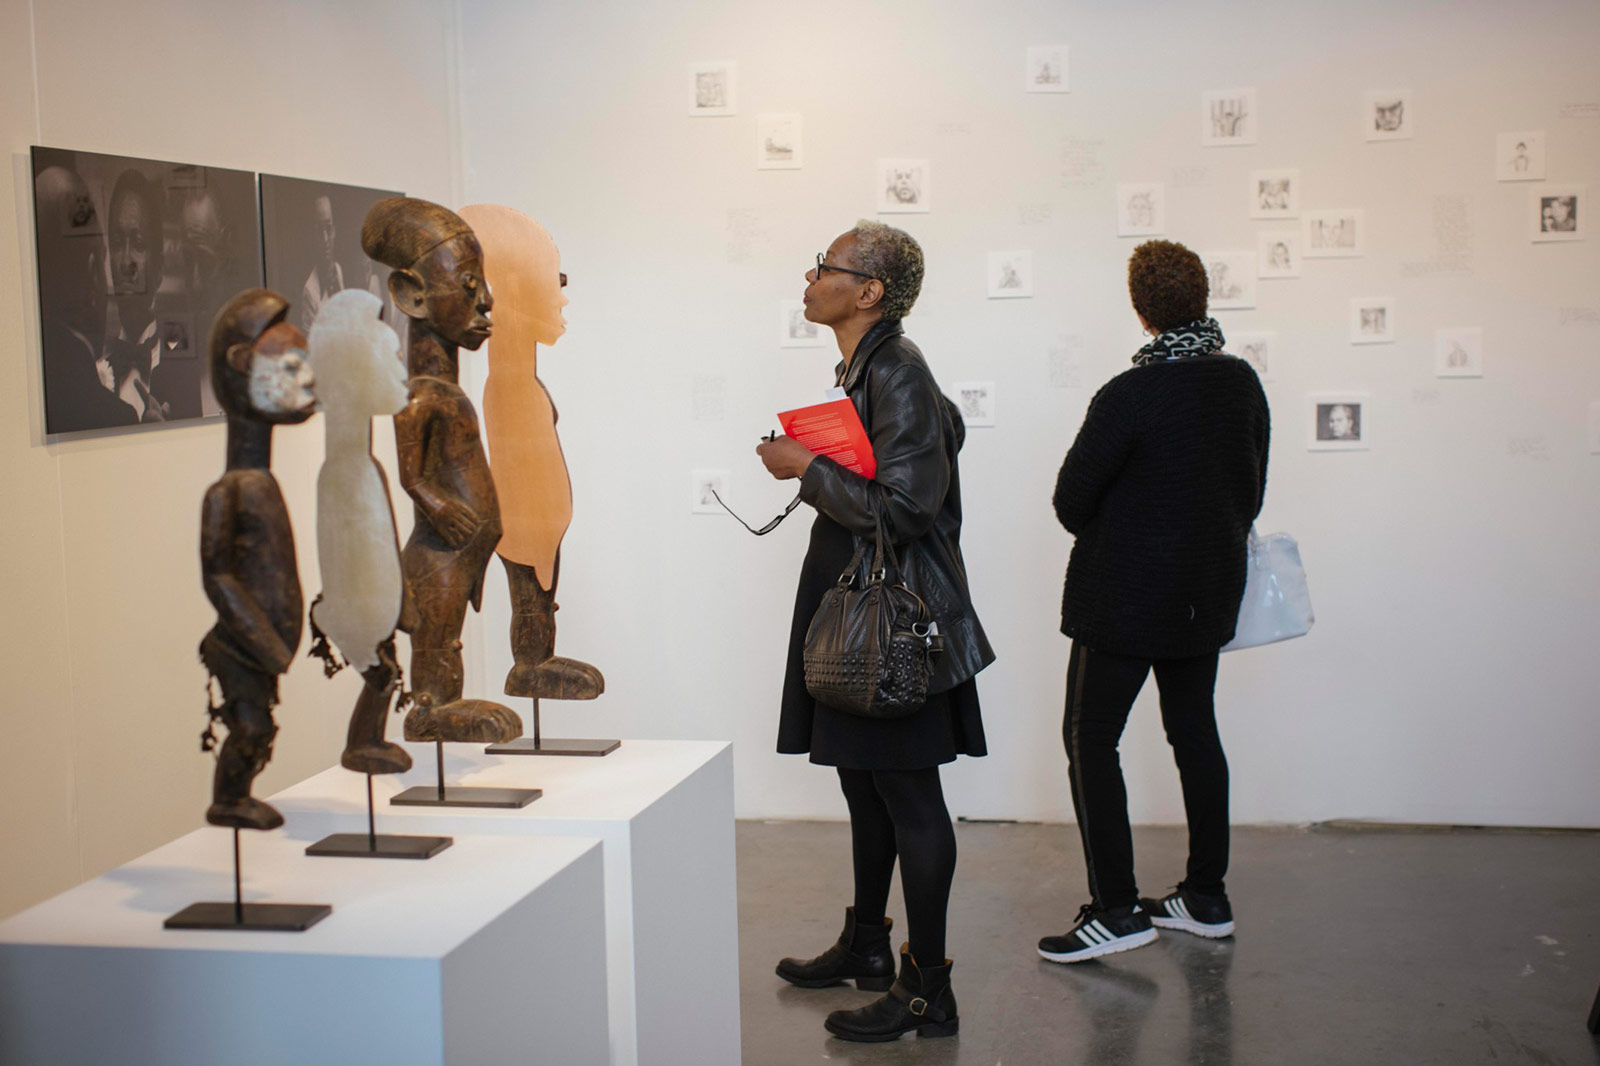 1-54 Contemporary African Art Fair, African Art, African Culture, KOLUMN Magazine, KOLUMN, KINDR'D Magazine, KINDR'D